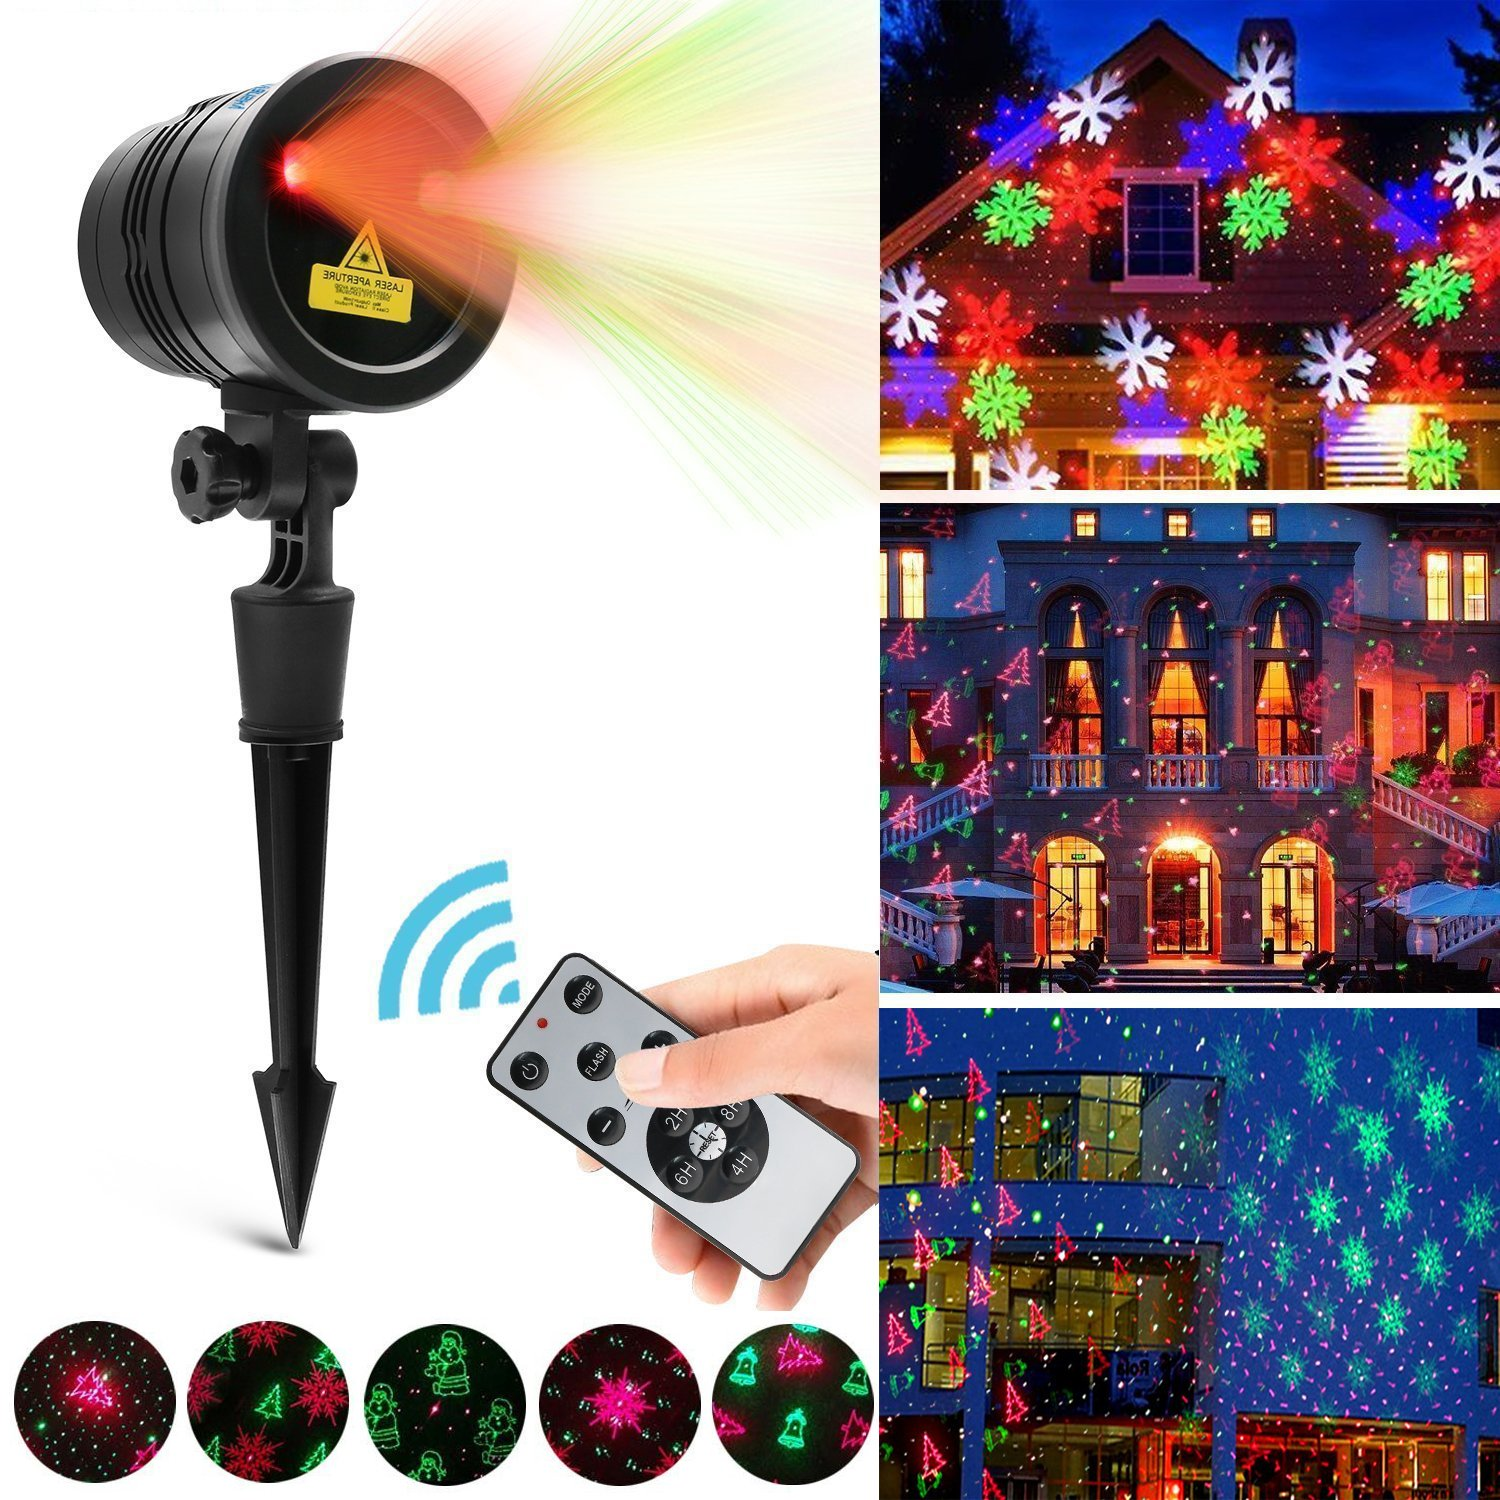 christmas decorations led laser light indoor outdoor projector lights with remote control waterproof 4